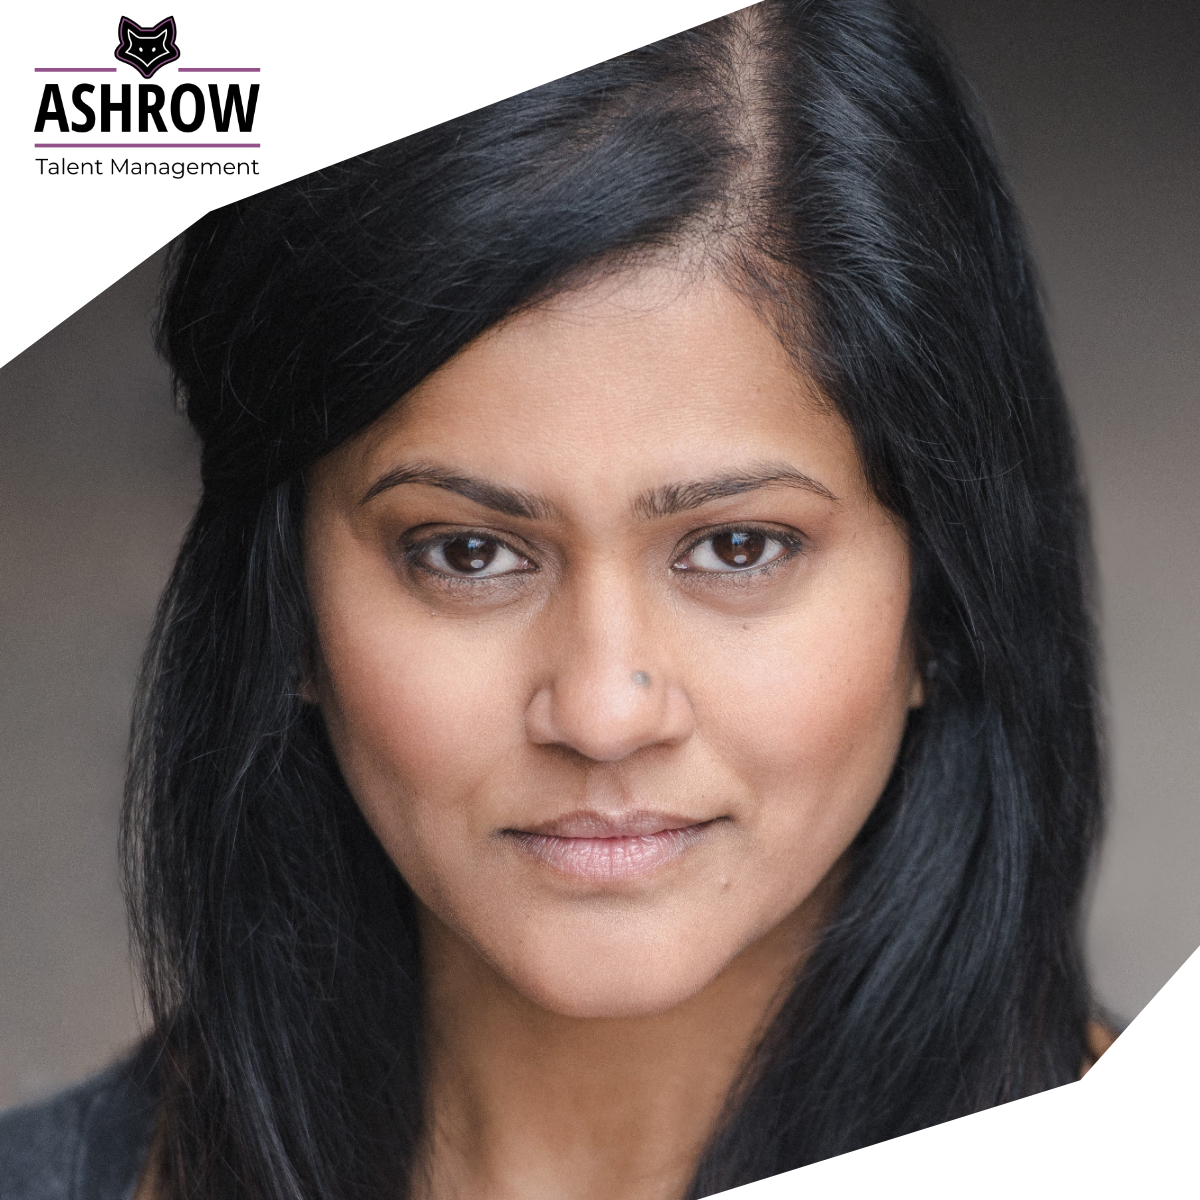 ashrowtm actors in the midlands and UK